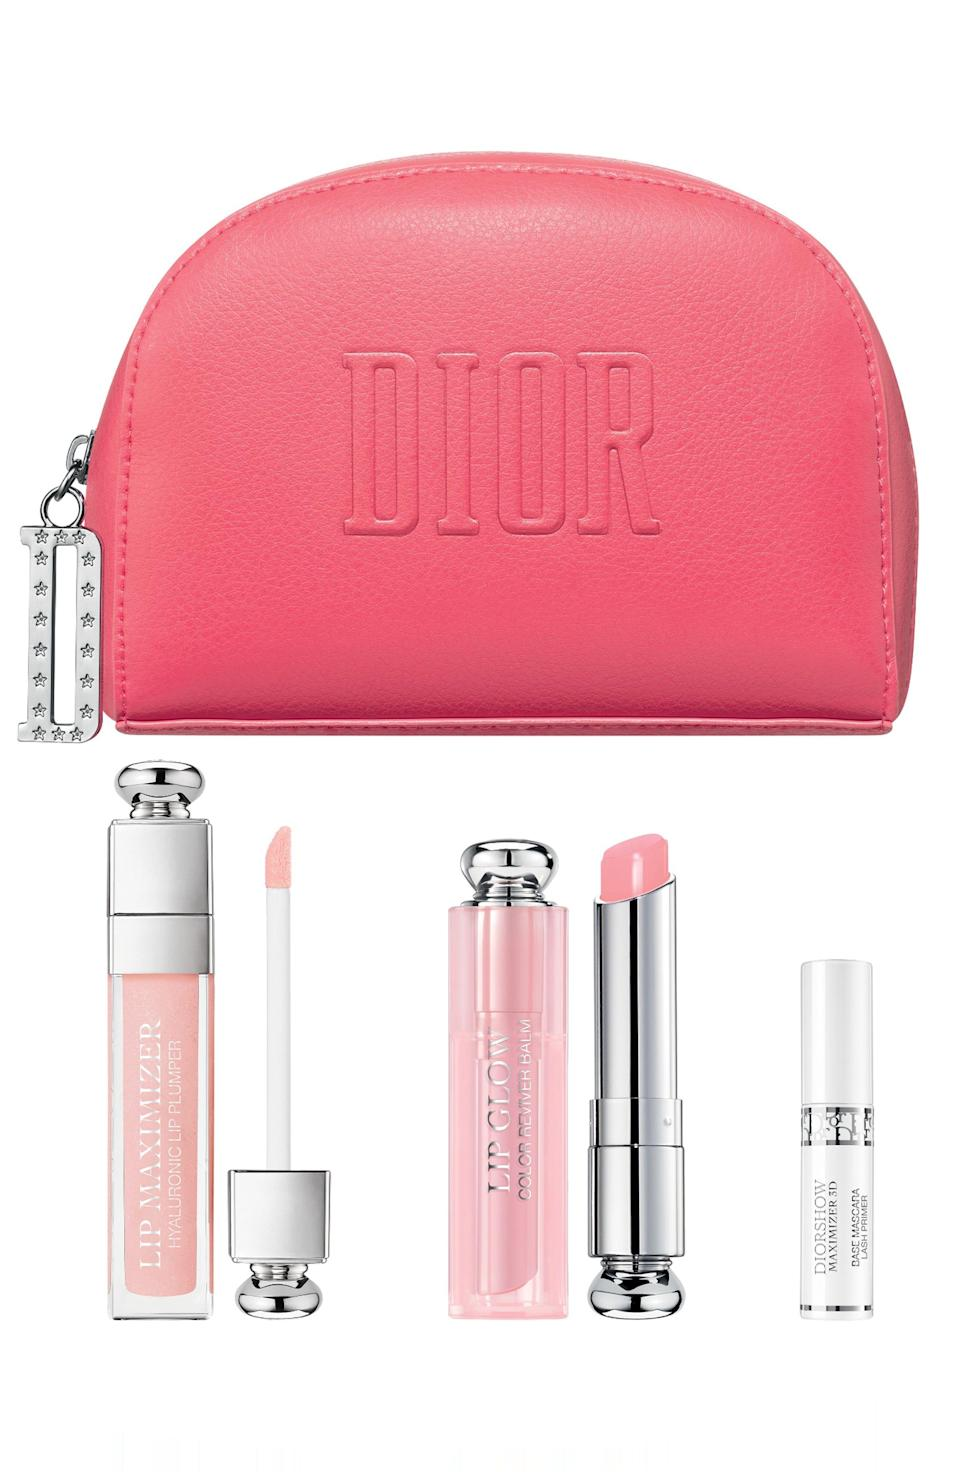 """<p><strong>DIOR</strong></p><p>nordstrom.com</p><p><strong>$68.00</strong></p><p><a href=""""https://go.redirectingat.com?id=74968X1596630&url=https%3A%2F%2Fwww.nordstrom.com%2Fs%2Fdior-professional-maximizing-lips-eyes-set%2F5586864&sref=https%3A%2F%2Fwww.harpersbazaar.com%2Fbeauty%2Fg33481900%2Fnordstrom-anniversary-sale-2020-best-beauty-makeup-deals%2F"""" rel=""""nofollow noopener"""" target=""""_blank"""" data-ylk=""""slk:SHOP NOW"""" class=""""link rapid-noclick-resp"""">SHOP NOW</a></p><p><strong>Sale: $68</strong></p><p>Value: $88</p><p>This Nordstrom exclusive set includes Dior Beauty's plumping Lip Maximizer gloss, Lip Glow (a lip balm so legendary that <a href=""""https://www.harpersbazaar.com/beauty/makeup/g20757840/shop-meghan-markle-wedding-makeup/"""" rel=""""nofollow noopener"""" target=""""_blank"""" data-ylk=""""slk:Meghan Markle"""" class=""""link rapid-noclick-resp"""">Meghan Markle</a> even wore the coral shade on her wedding day) and a mini-sized plumping eyelash primer. PS: You're forgiven if you want to use this eye candy of a pouch as a wallet as well. </p>"""